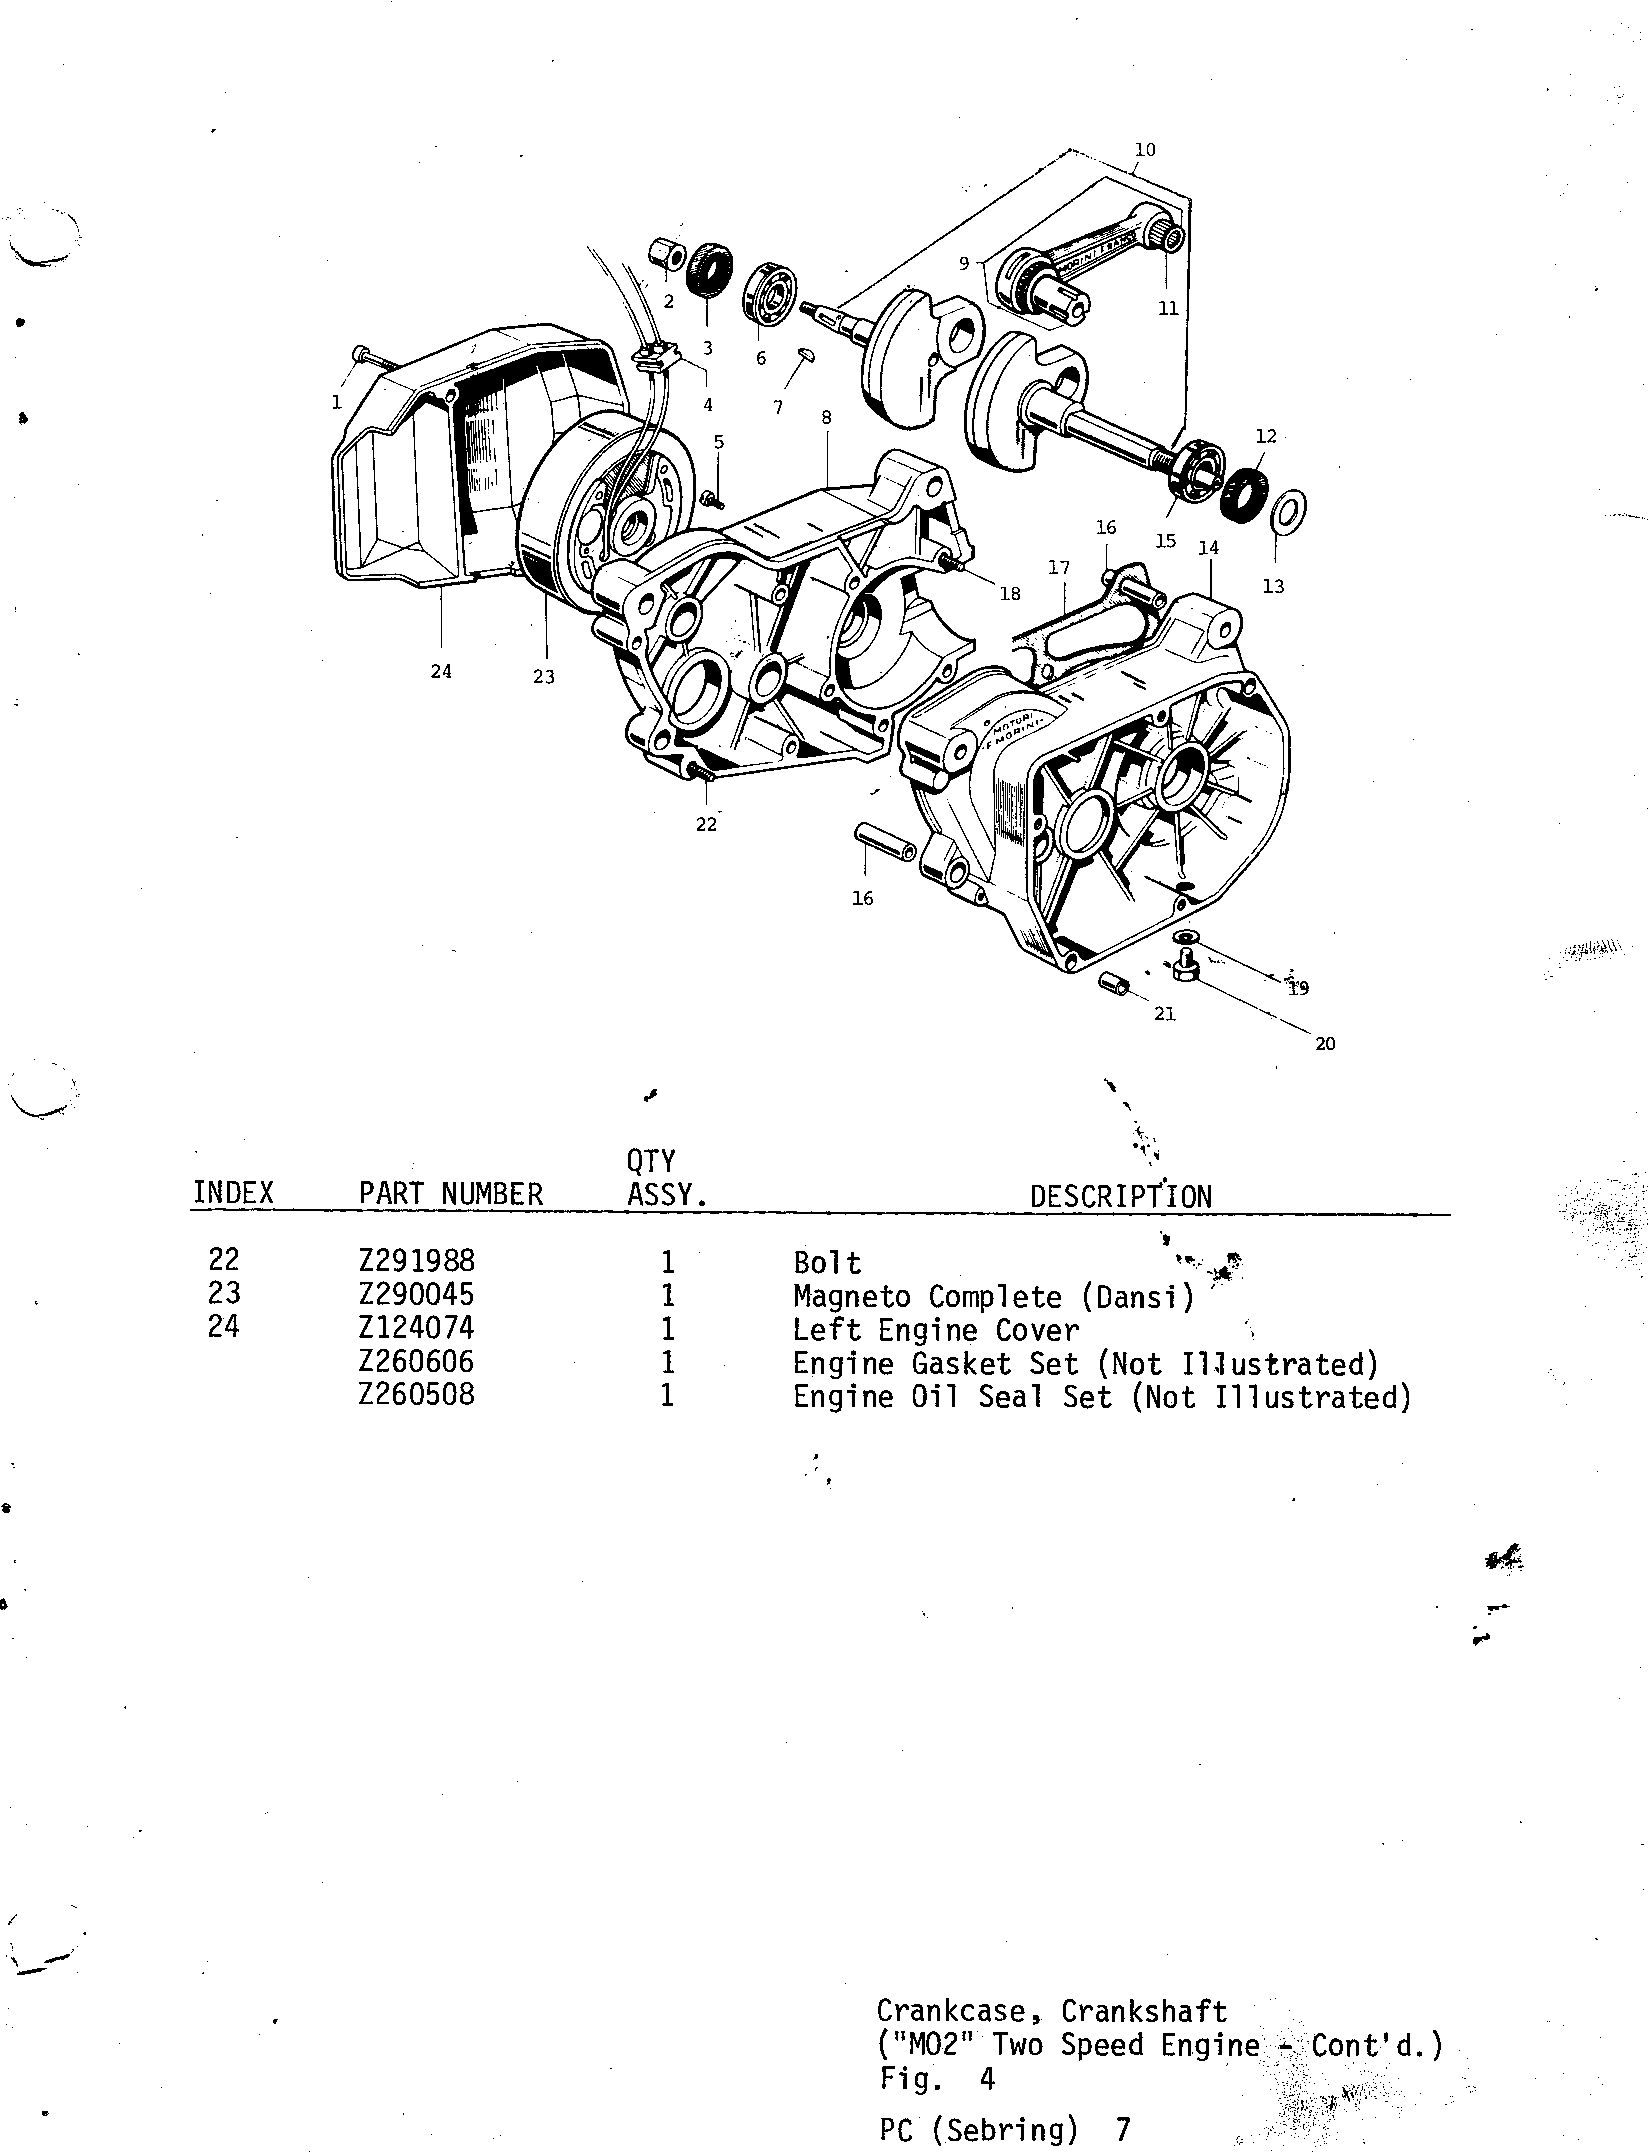 07-CRANKCASE, CRANKSHAFT, M02 TWO SPEED ENGINE